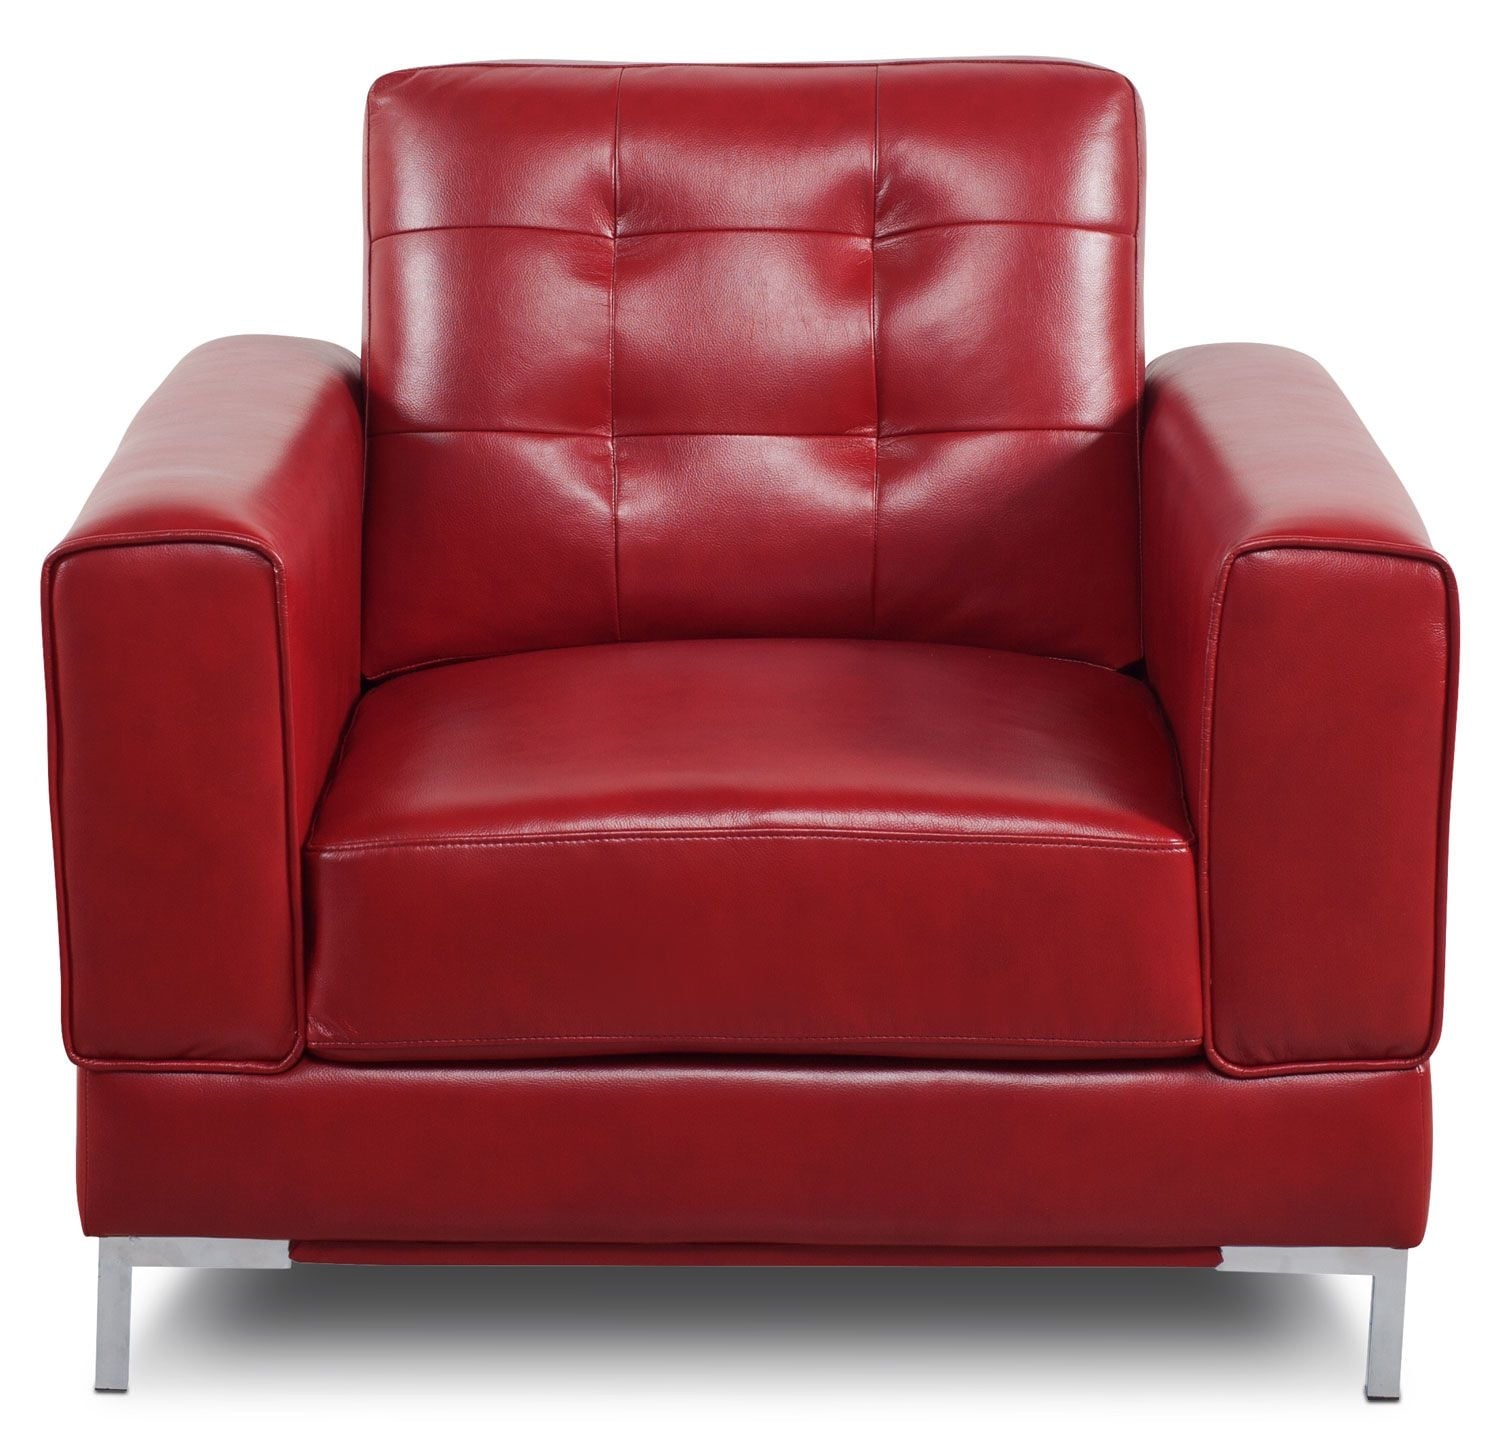 Living Room Furniture - Myer Leather-Look Fabric Chair - Red